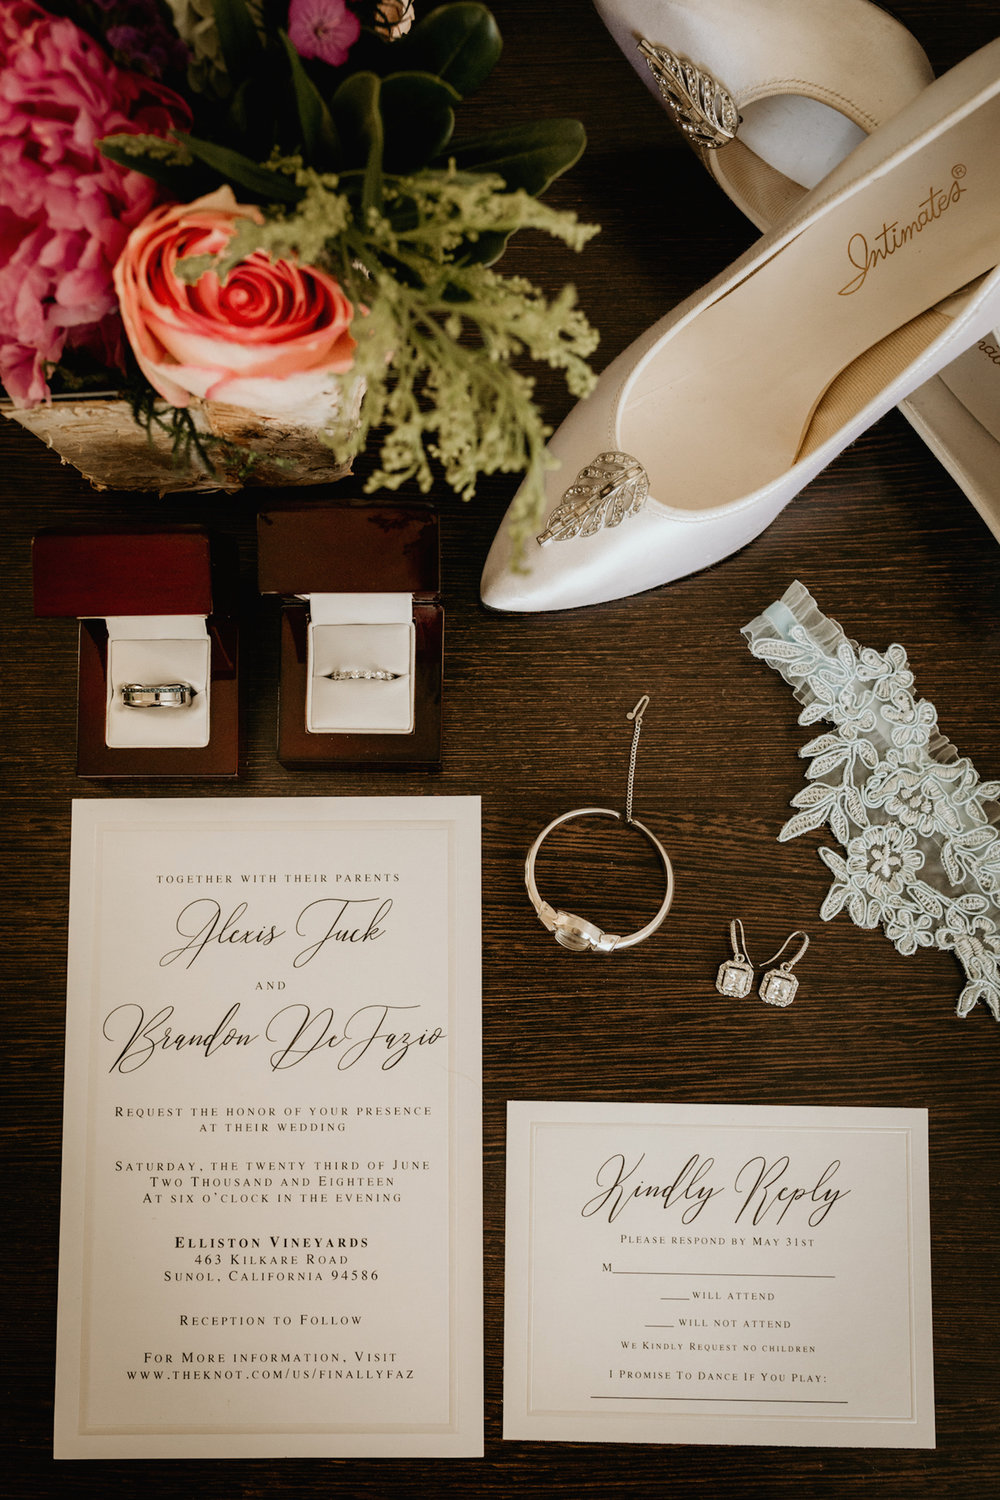 San Francisco Wedding Stationary Details.jpg